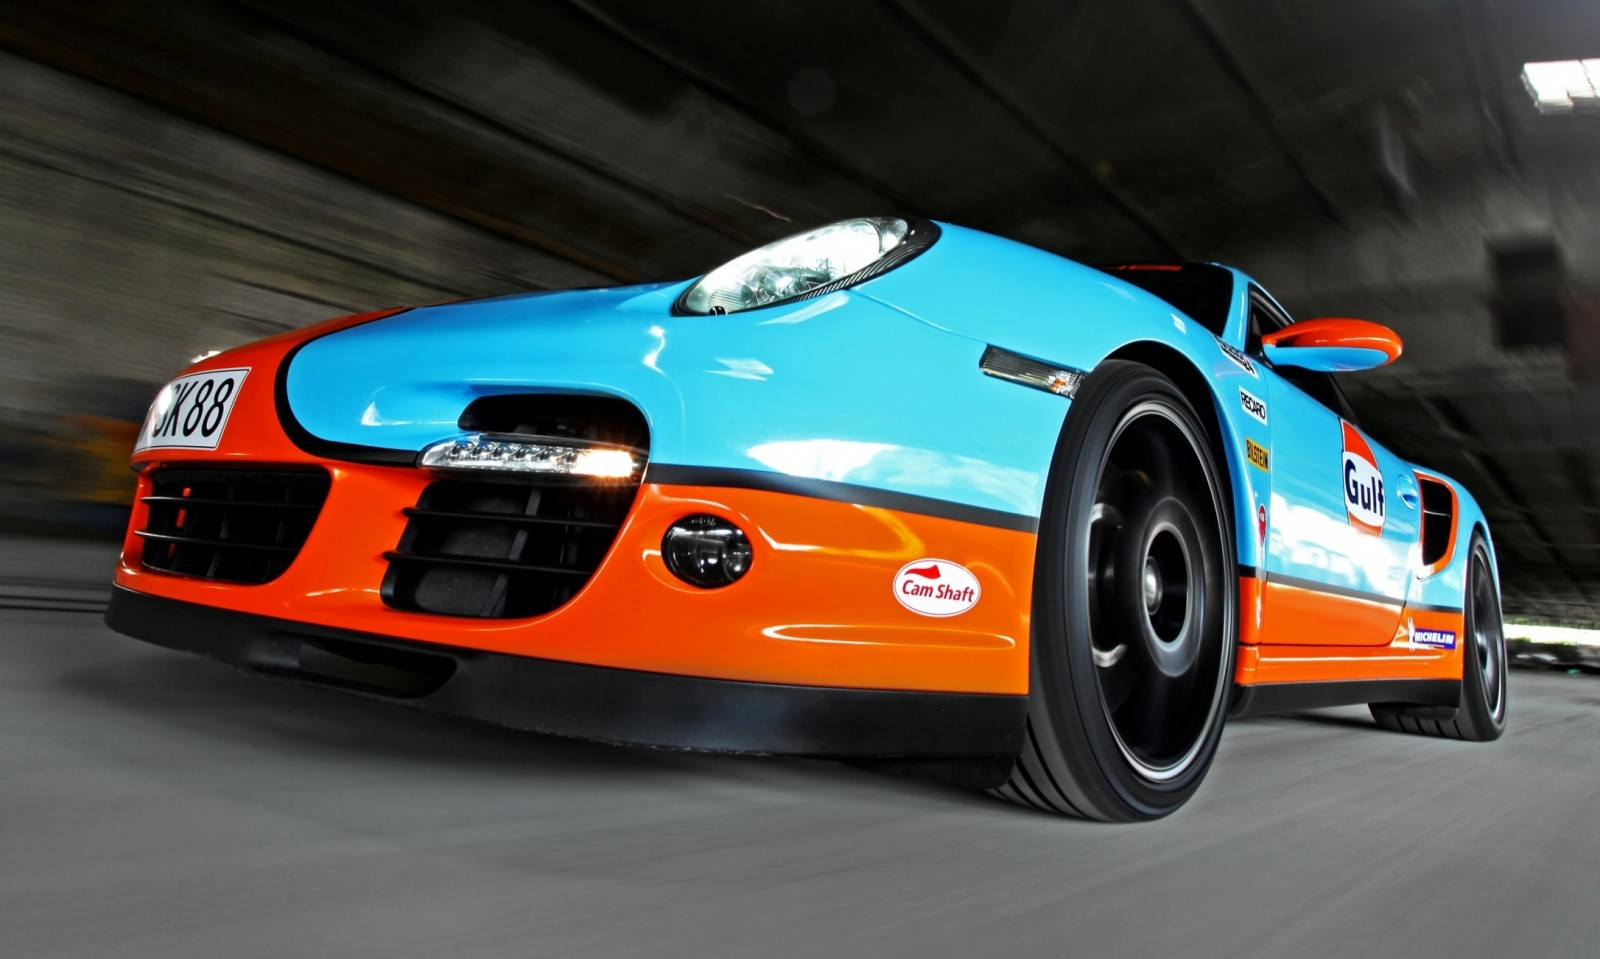 Gulf Racing Livery by CAM SHAFT for the Porsche 911 Turbo 11